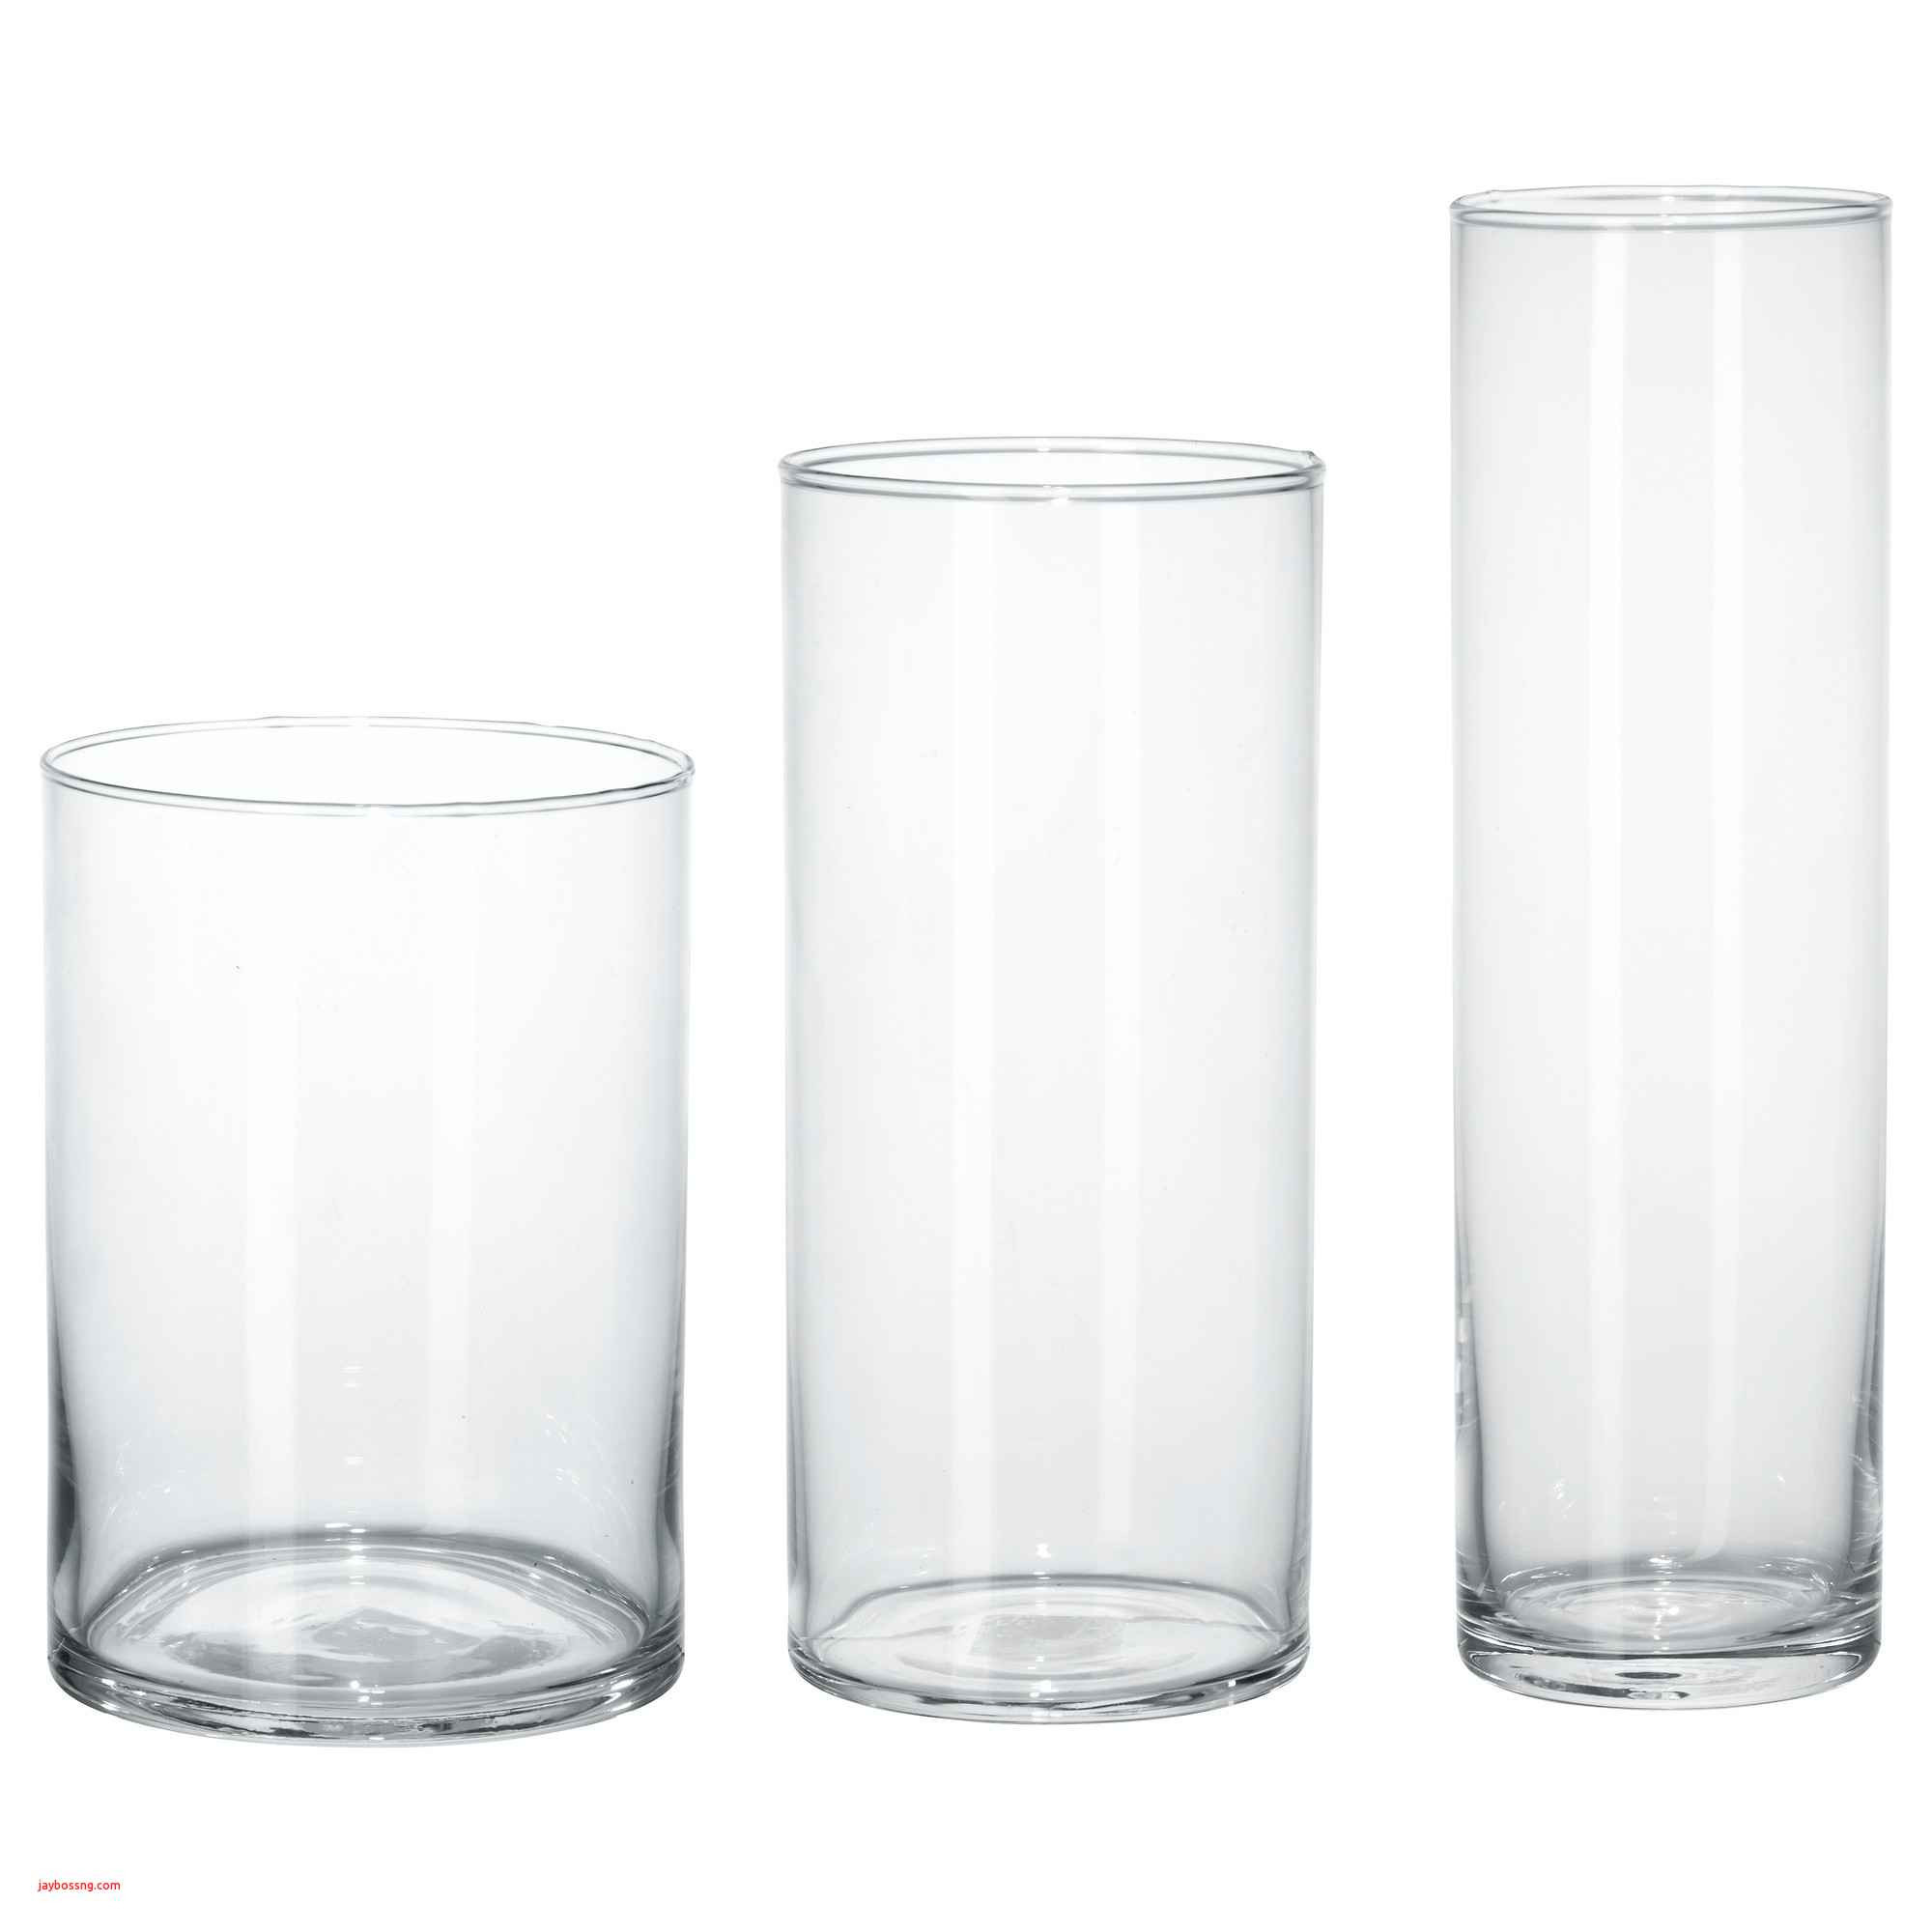 glass display vase of the ikea white table easy desk view throughout ikea white table created pe s5h vases ikea vase i 0d bladet australia filler